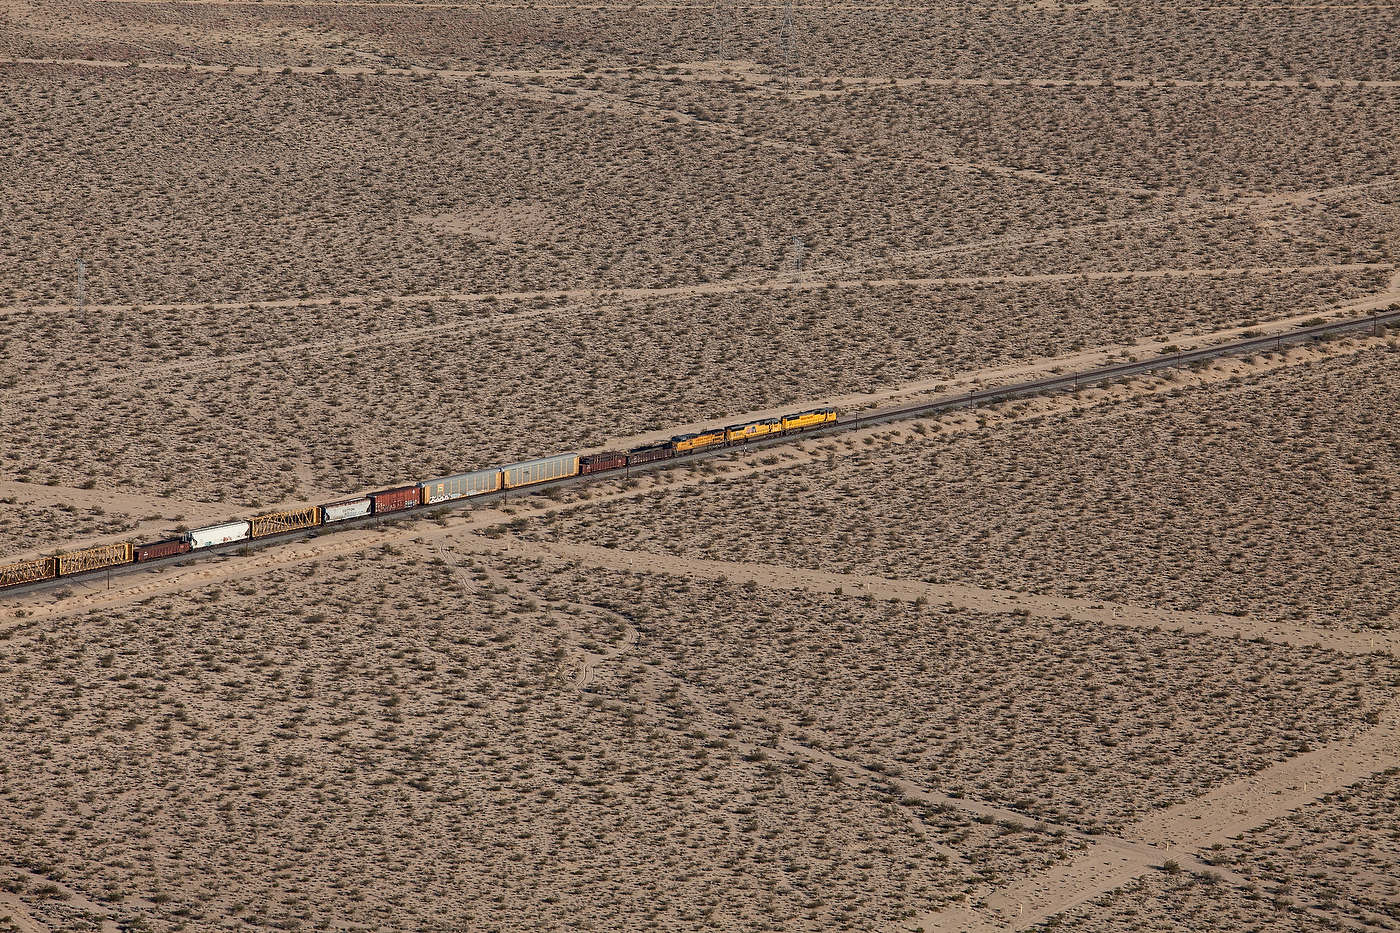 Freight train, Mojave Desert, Nevada.